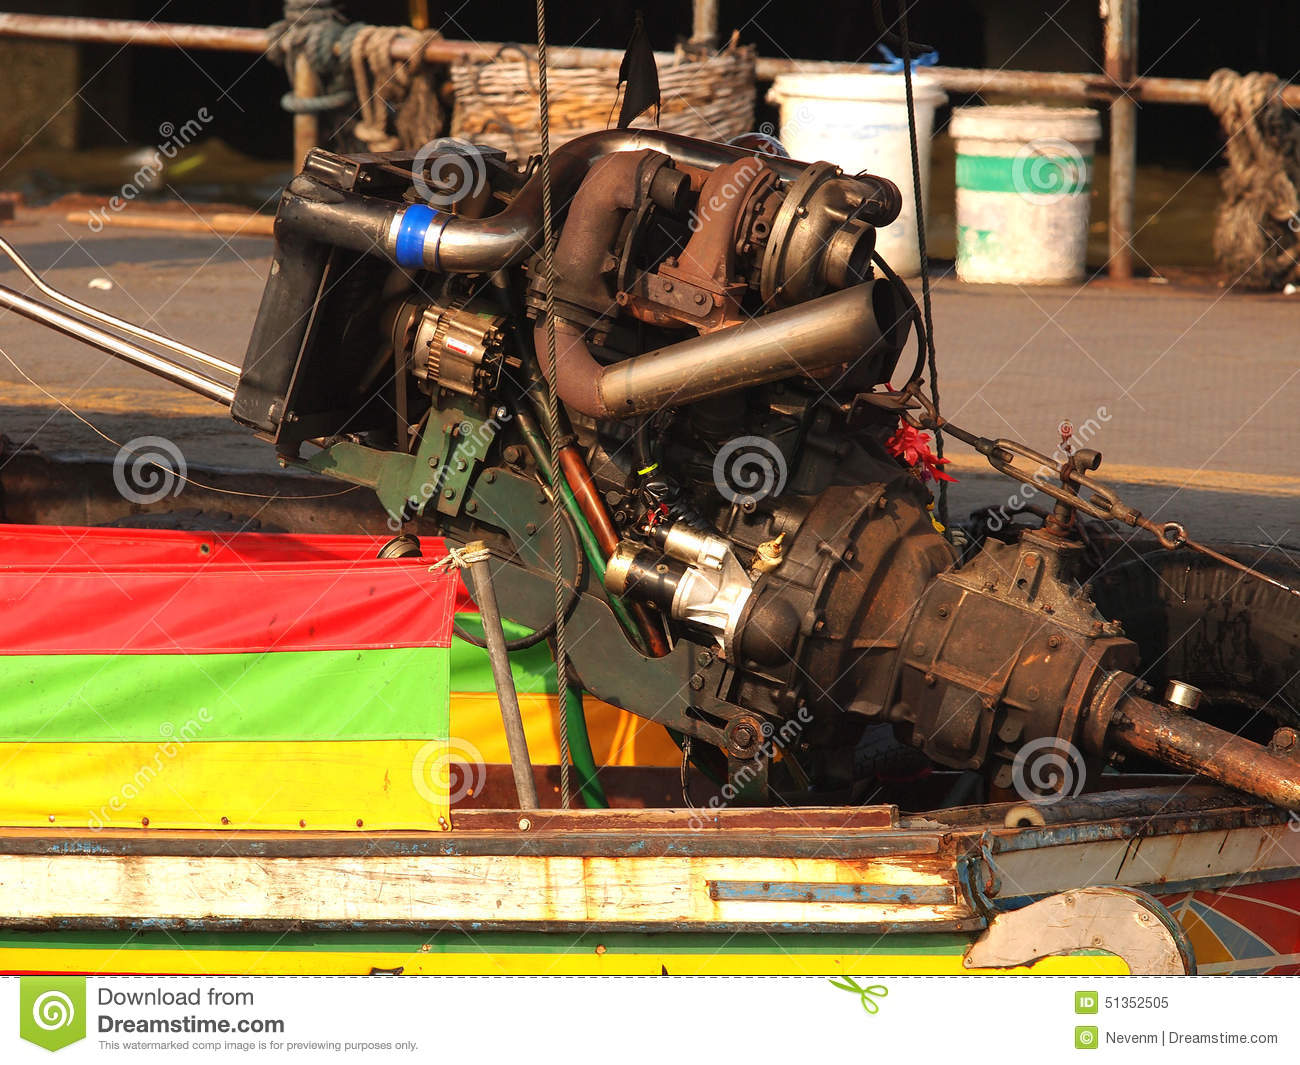 Longtail boat engine stock image  Image of diesel, river